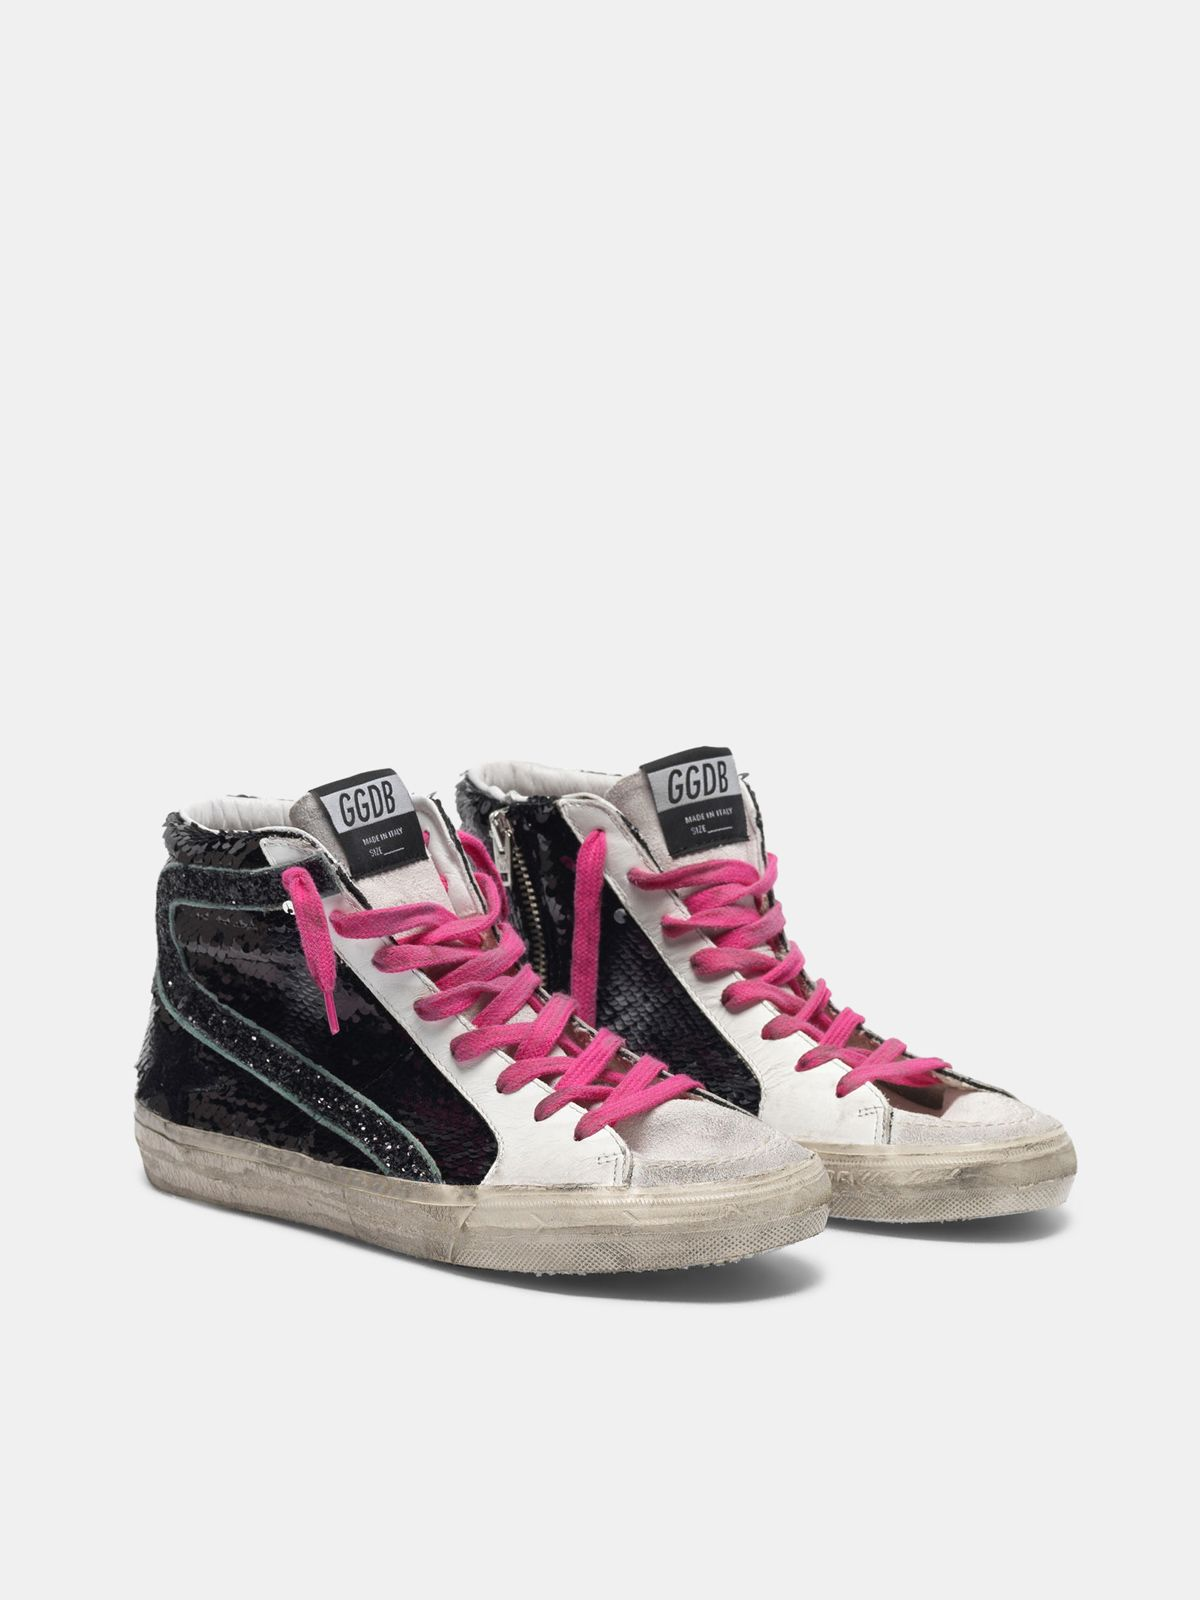 Golden Goose - Sneakers Slide con paillettes nere in